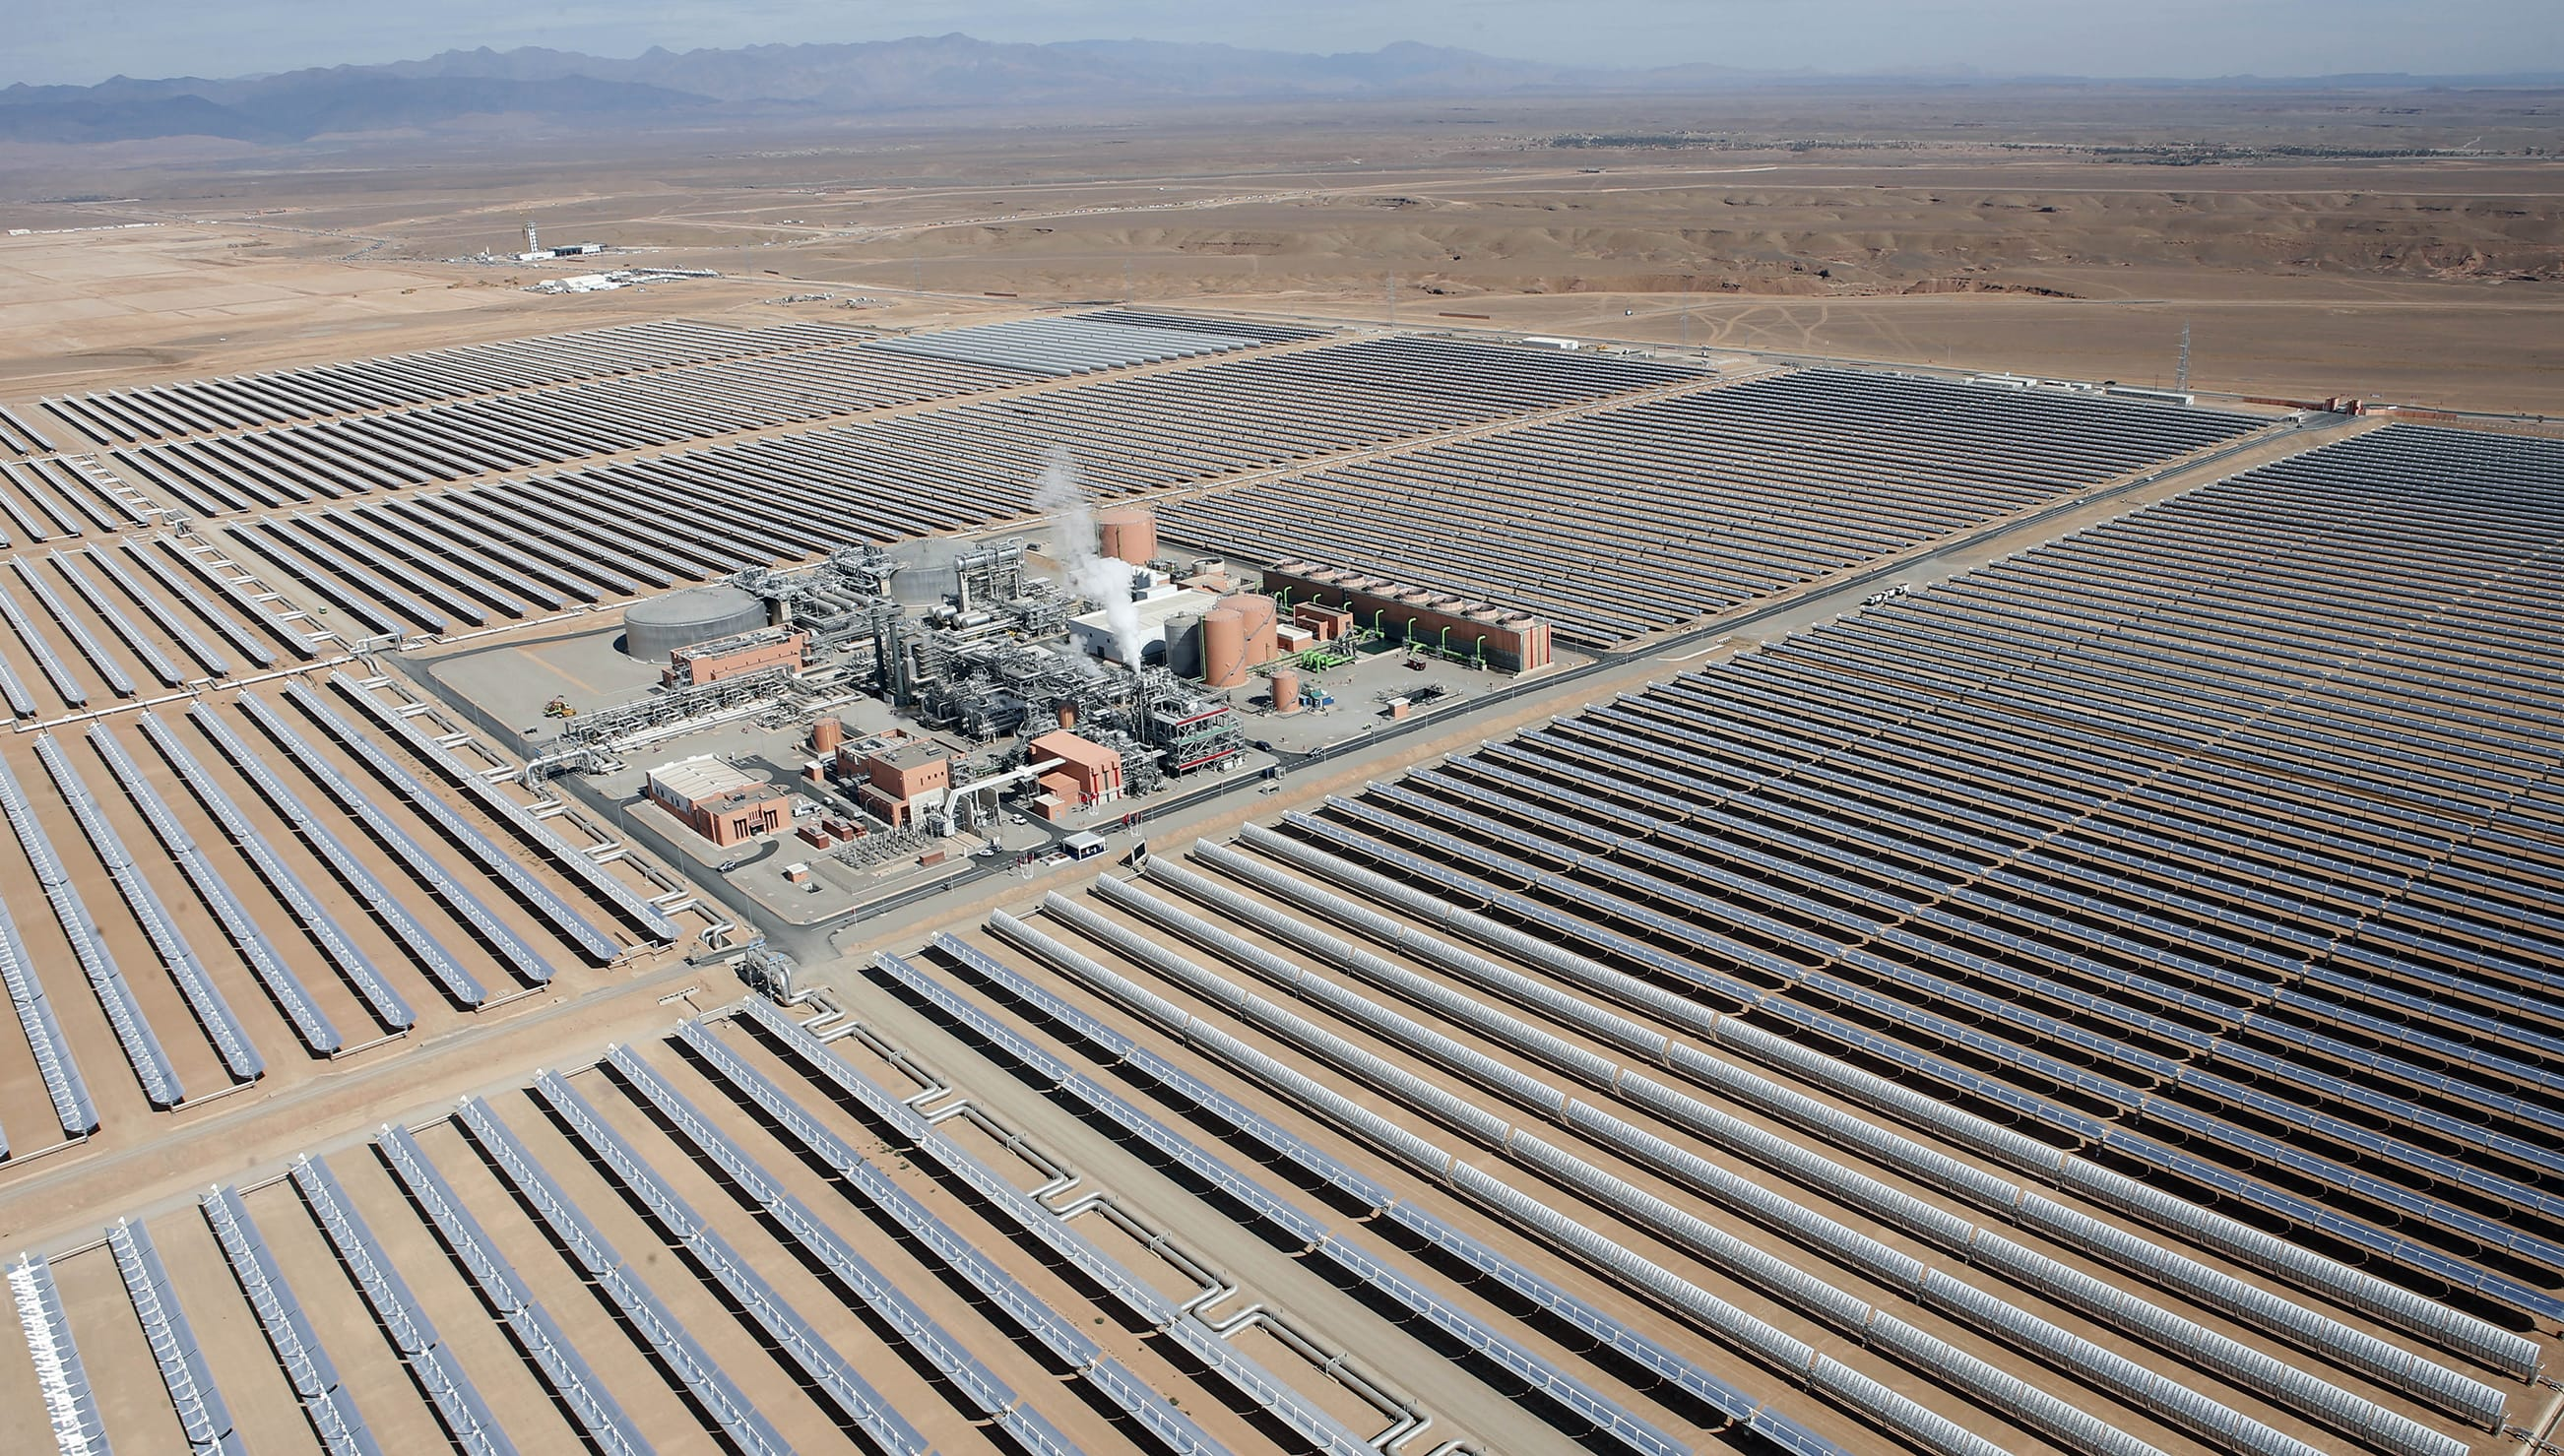 Morocco's Renewable Energy Drive an Example for the Region